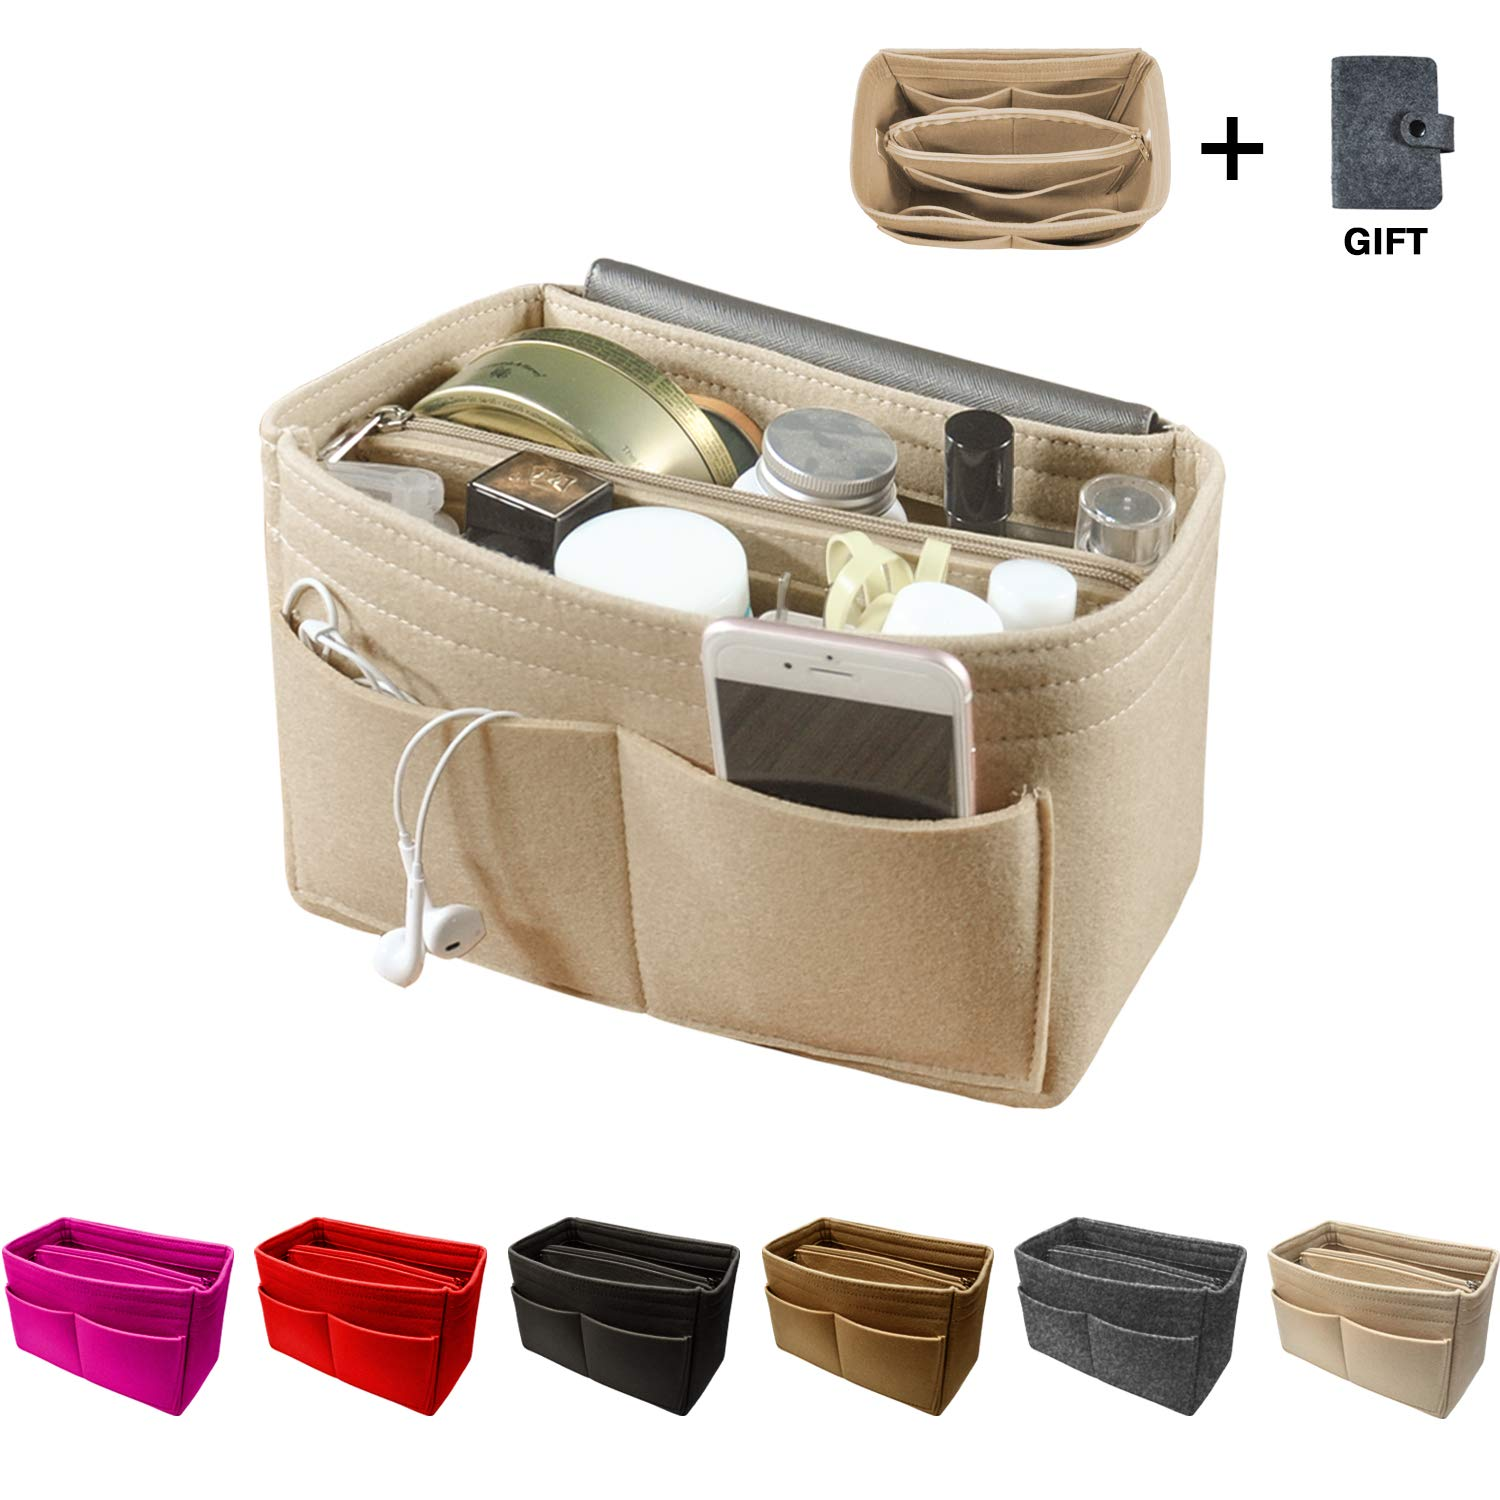 OMYSTYLE FASHION Purse Organizer Insert, Handbag & Tote Organizer, Perfect for Speedy Neverfull and More,Beige Medium